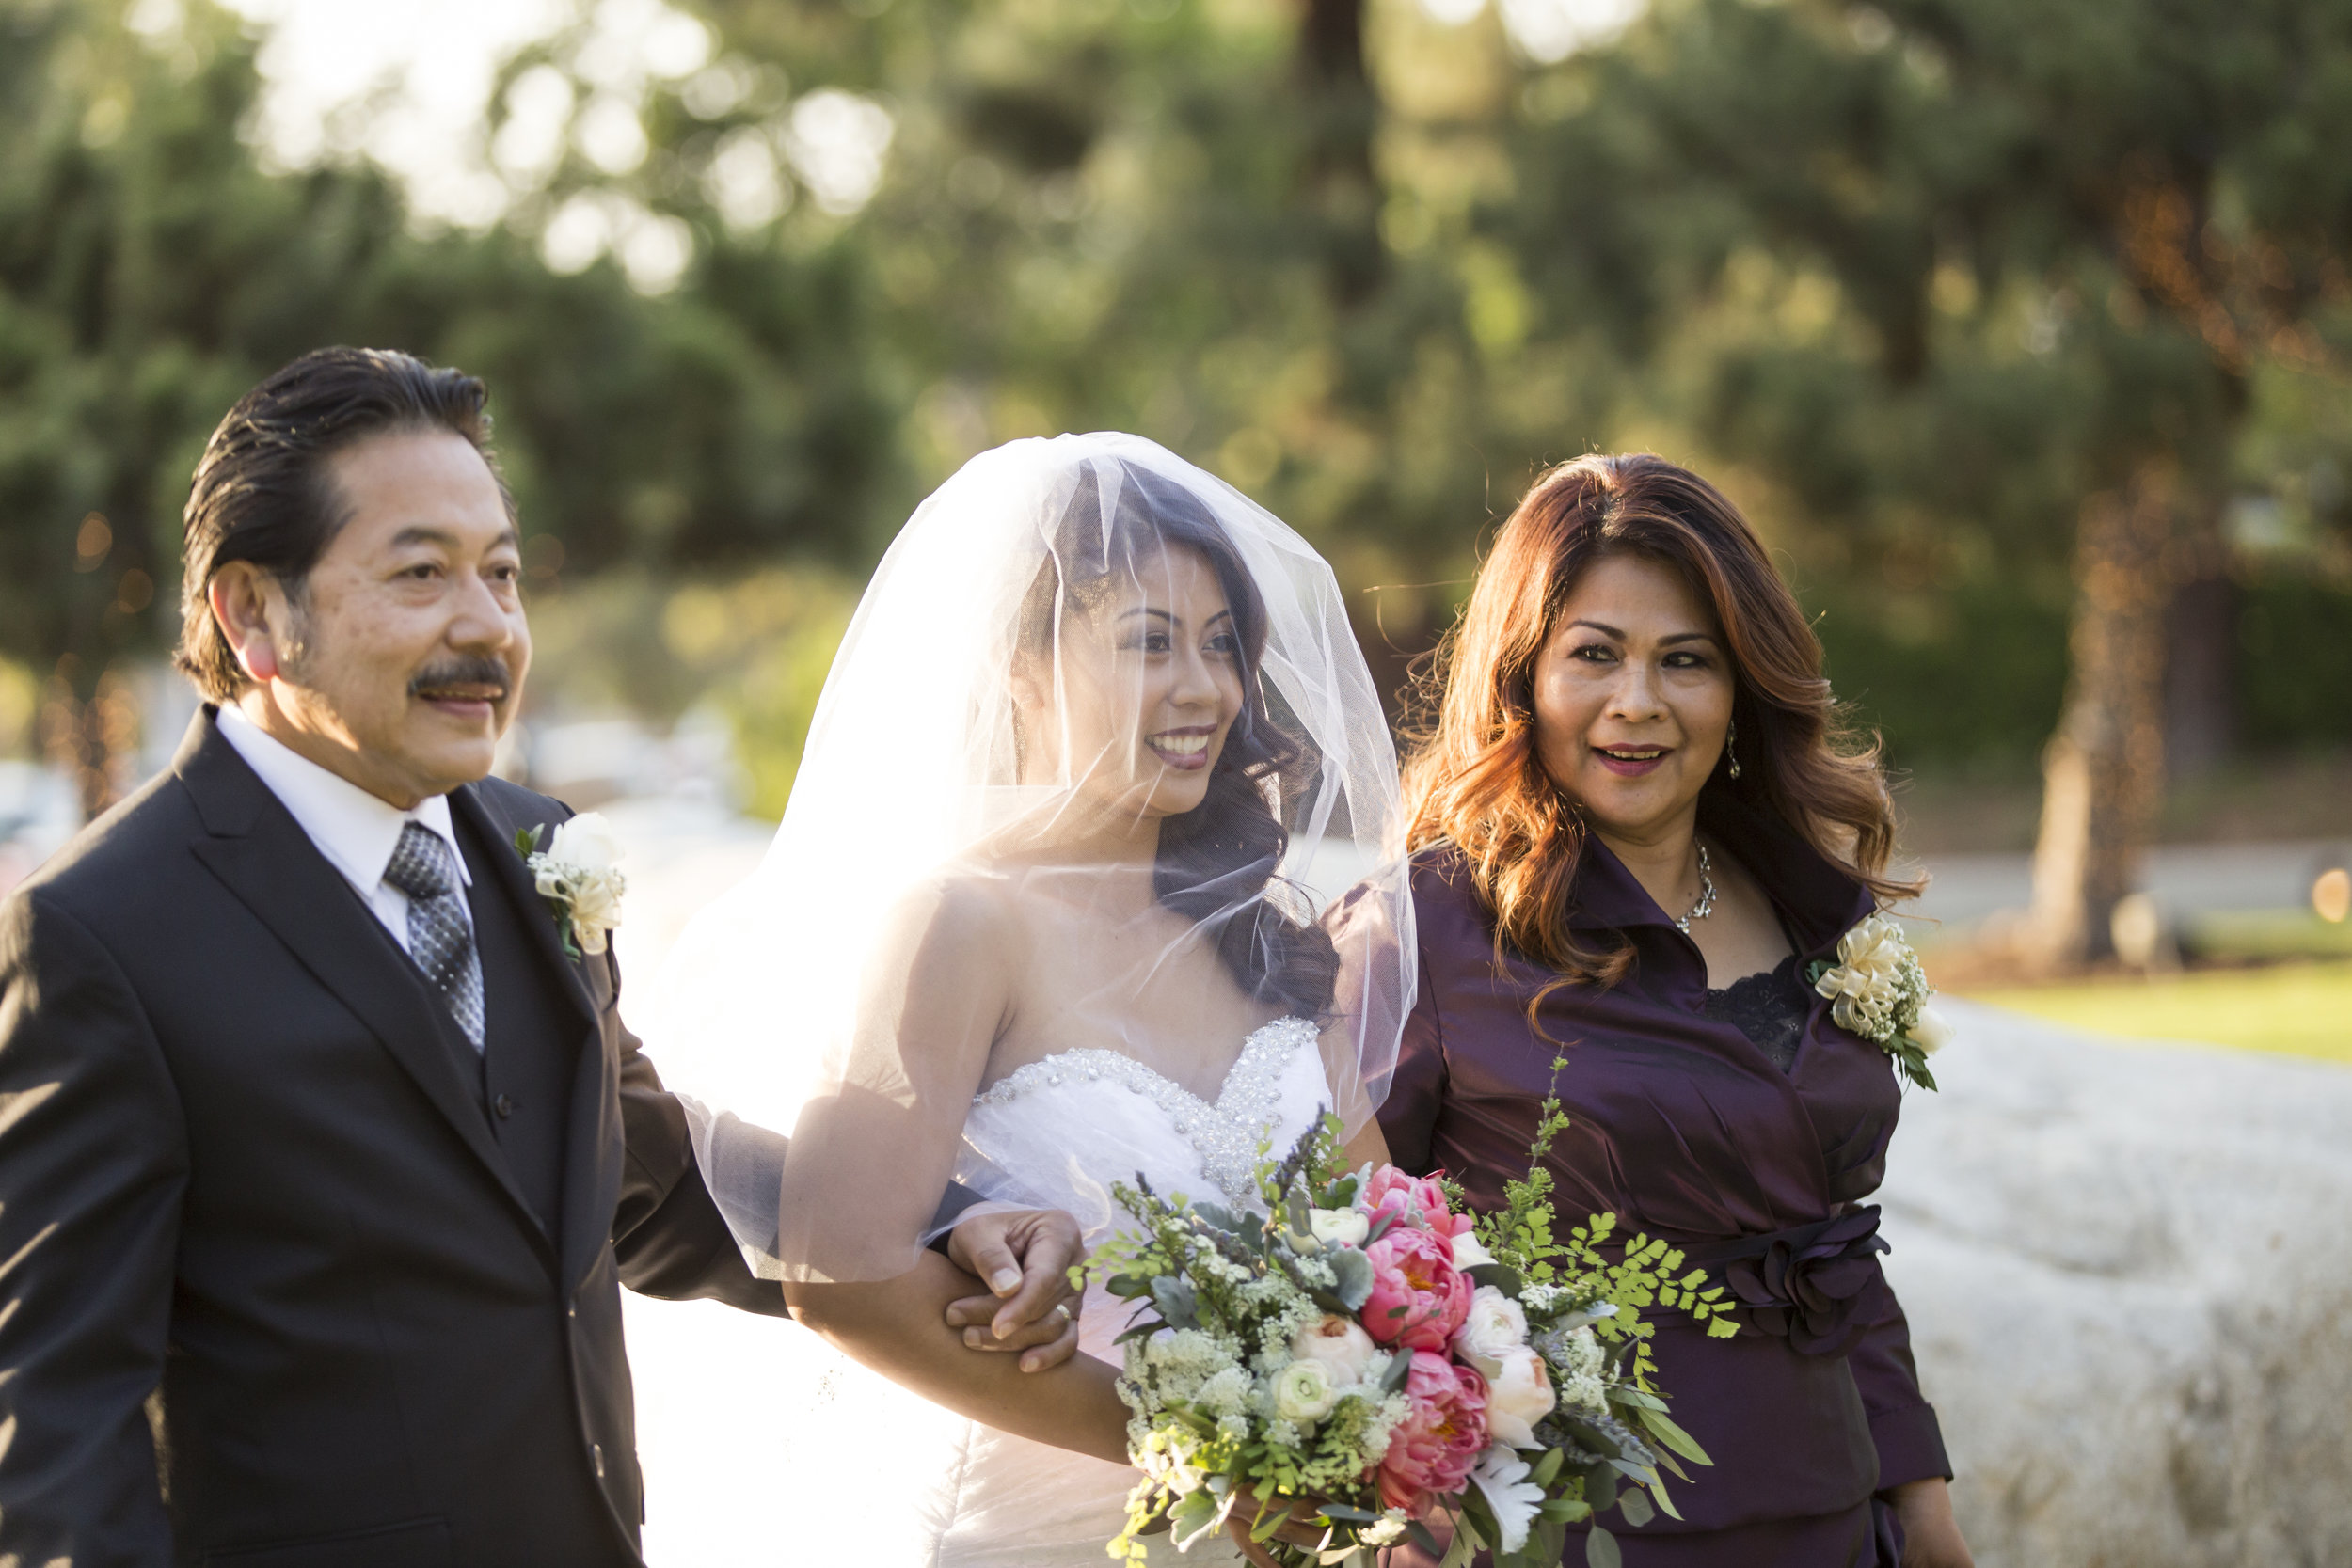 Costa Mesa Wedding Photography_Oscar&Amber-401.jpg